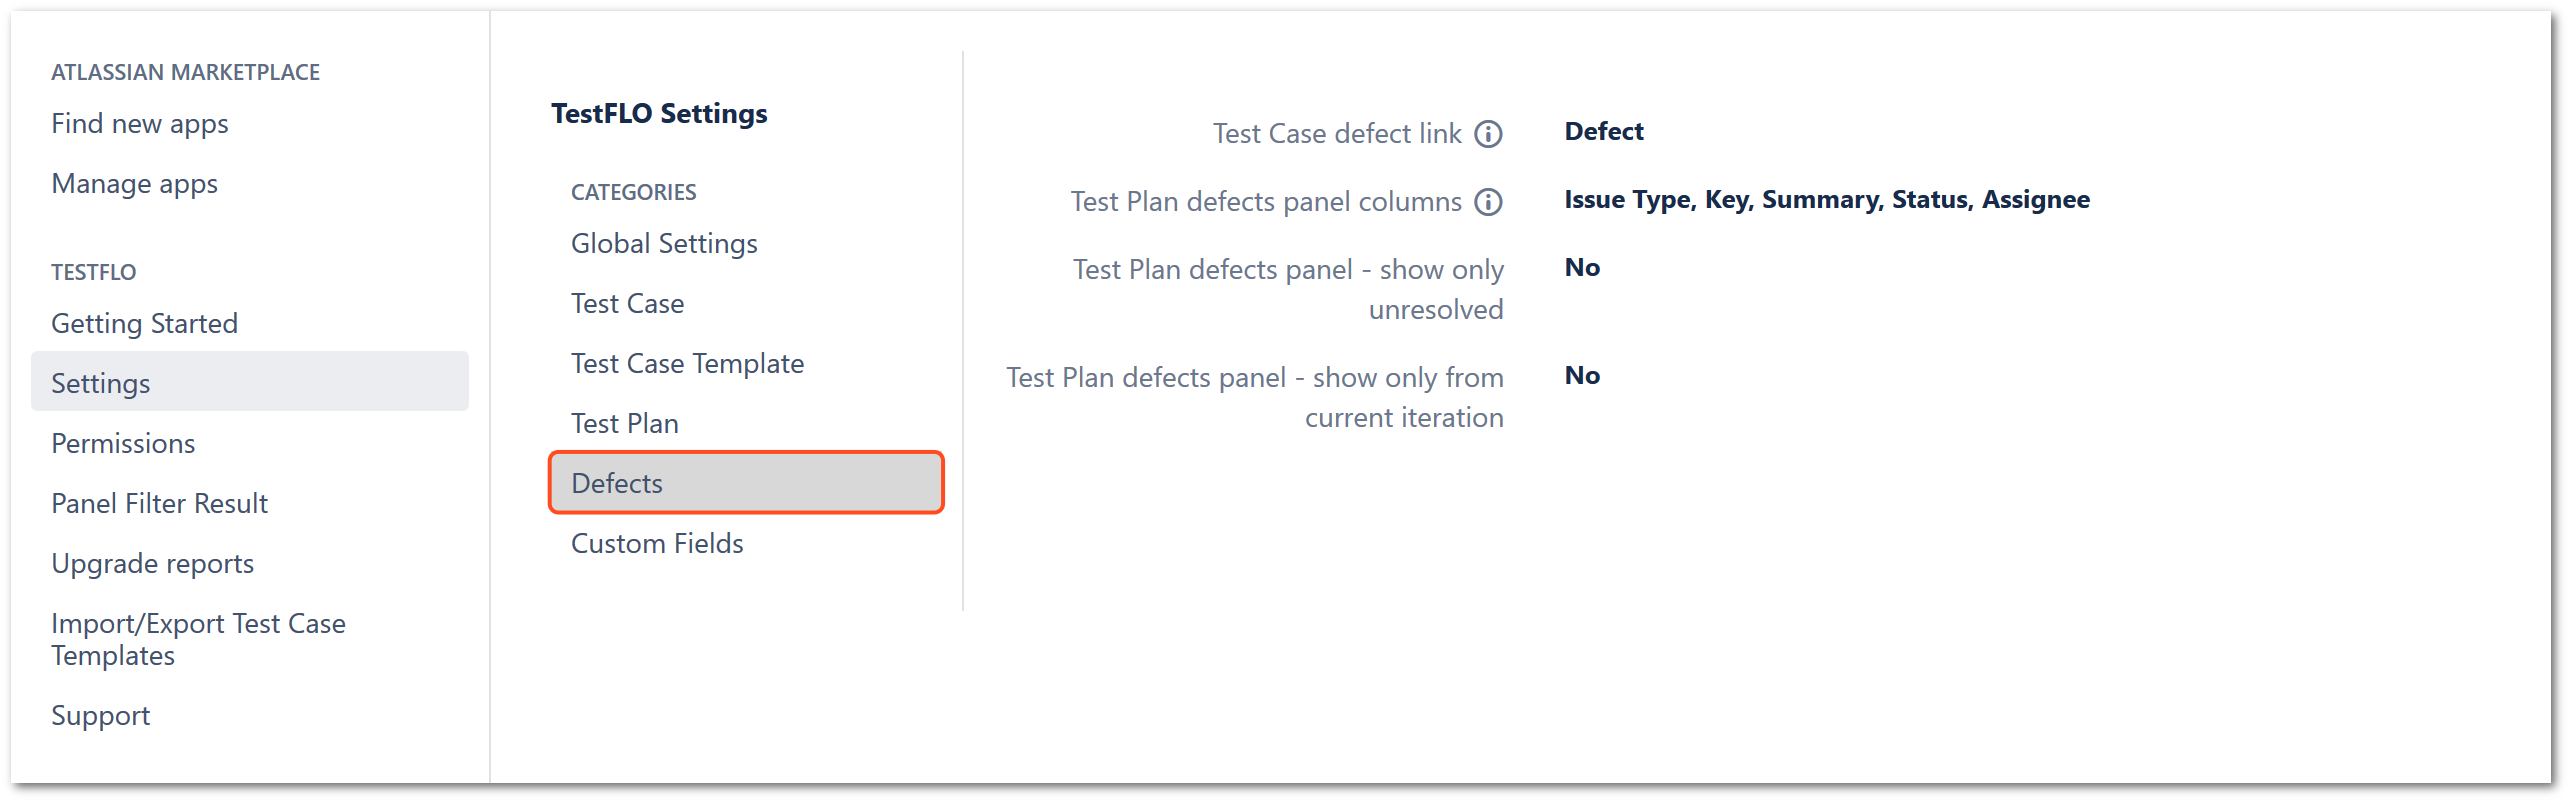 Defects section in TestFLO settings